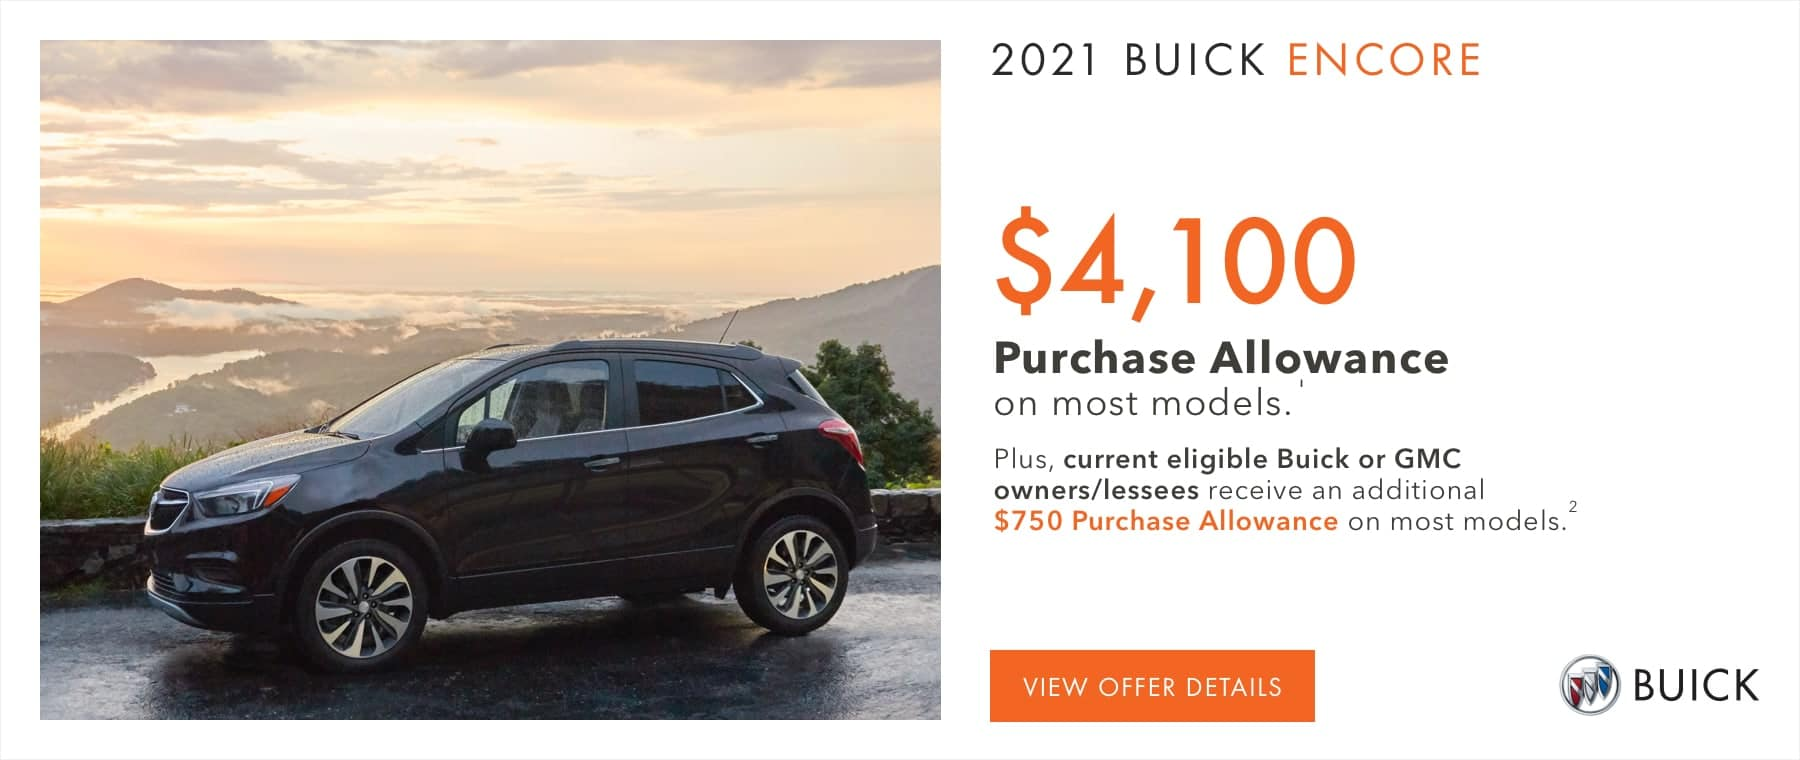 $4,100 Purchase Allowance on most models.1 Plus, current eligible Buick or GMC owners/lessees receive an additional $750 Purchase Allowance on most models.